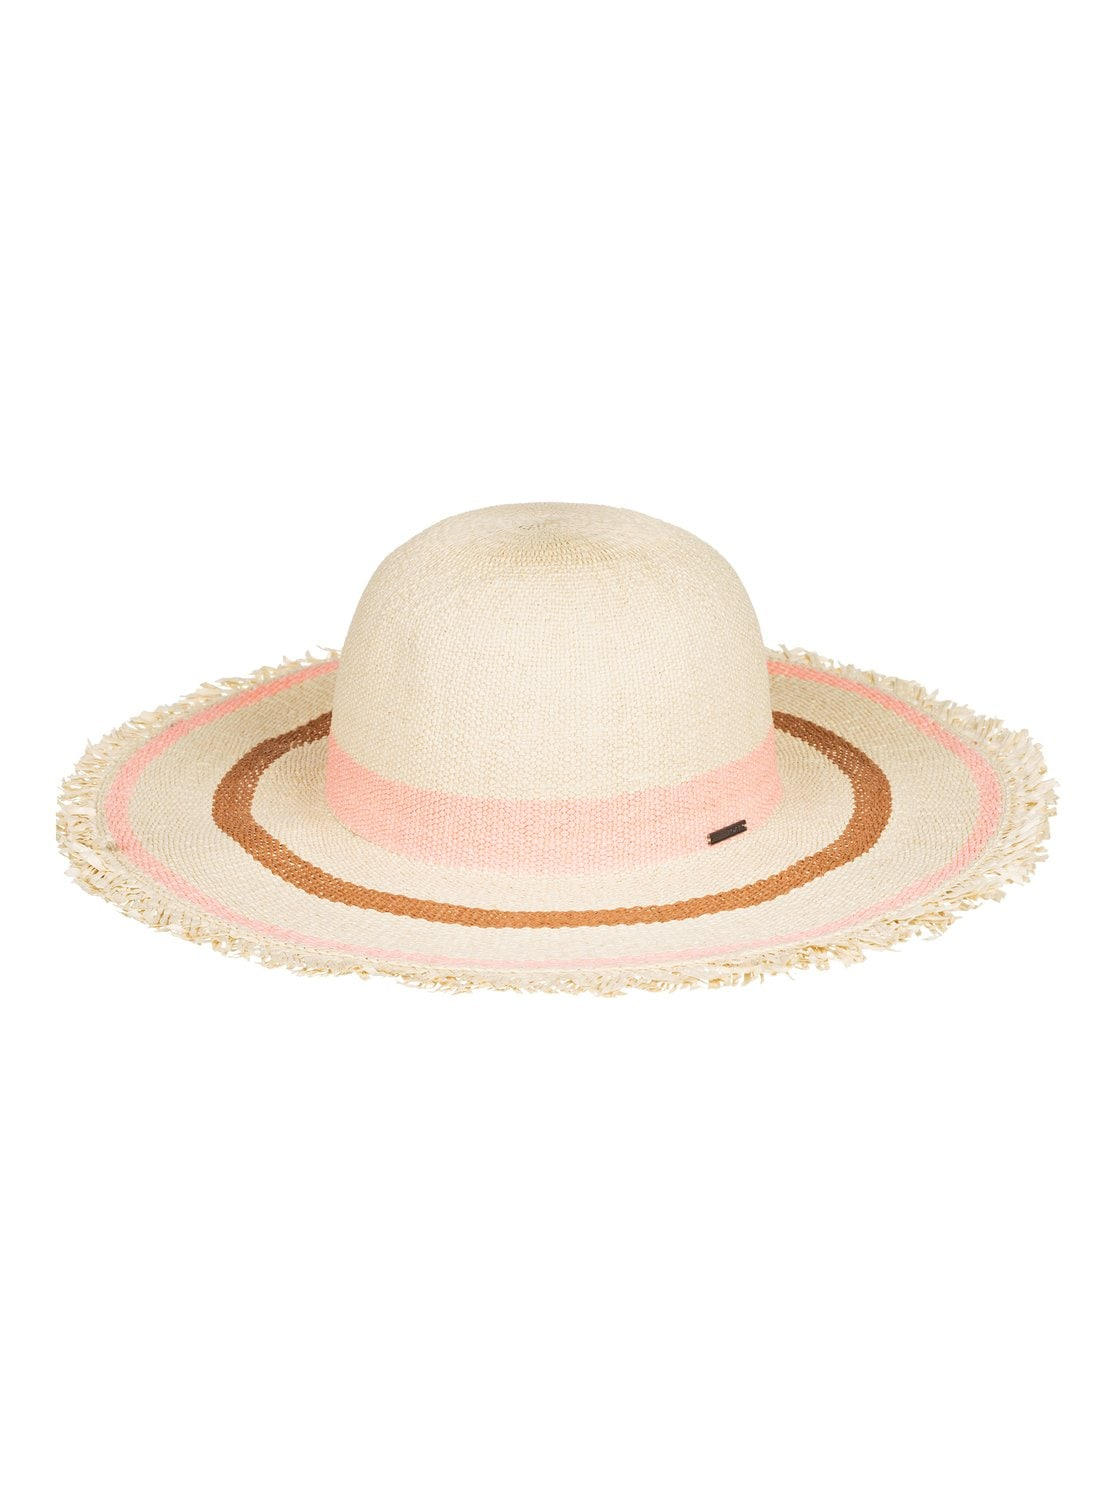 Roxy Strohhut Sound Of The Ocean rosa Damen Strohhüte Hüte Accessoires